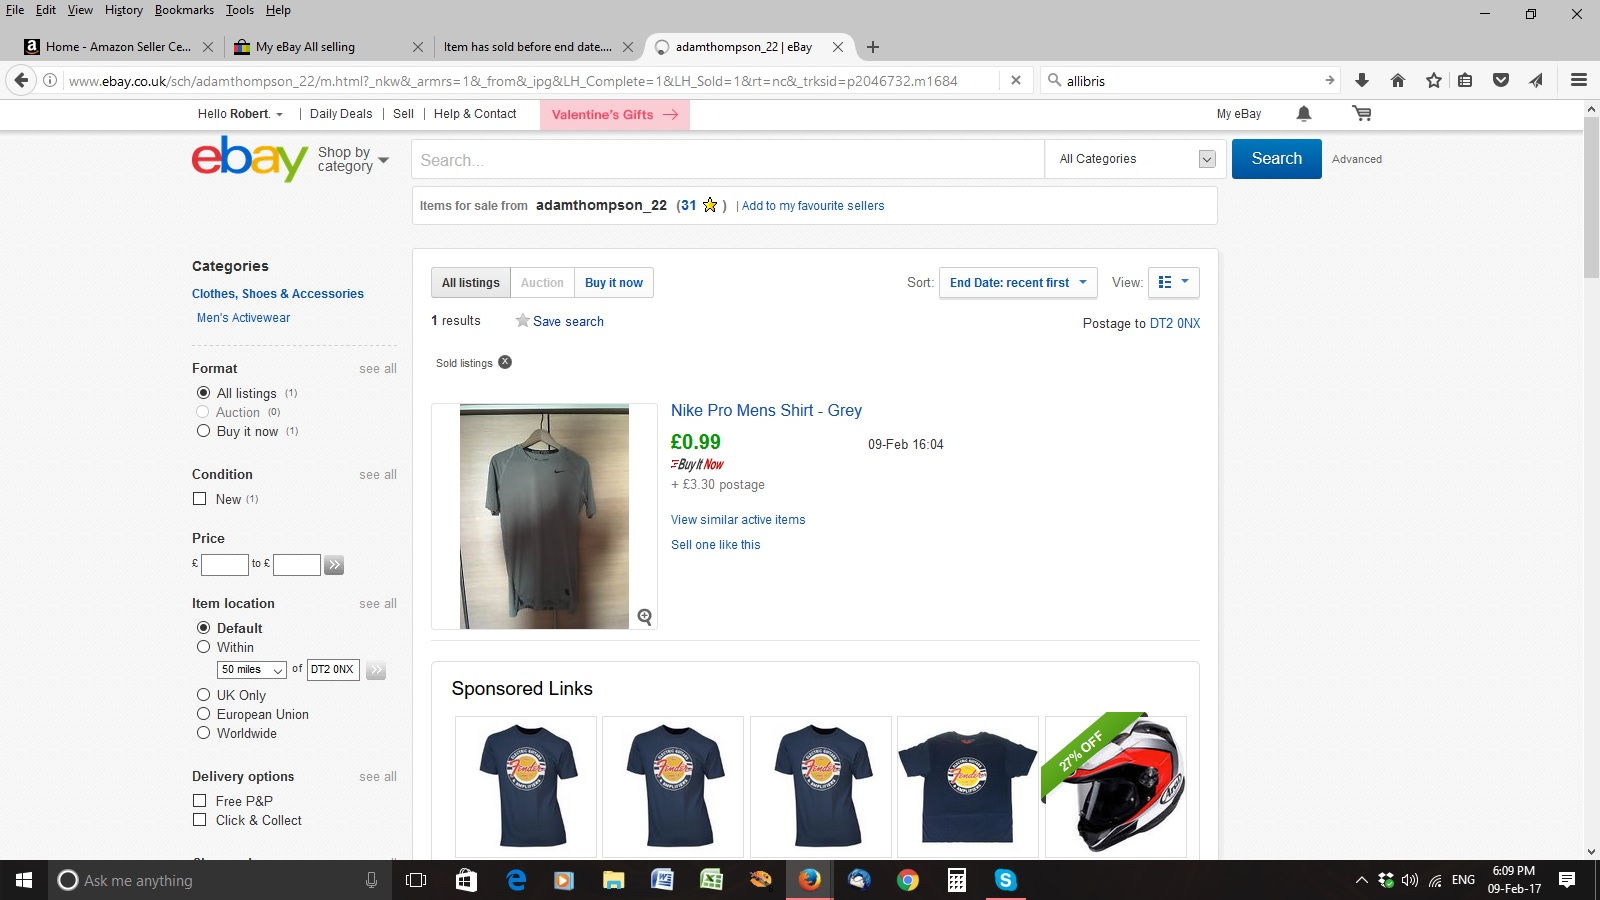 how to see a report of sold items on ebay